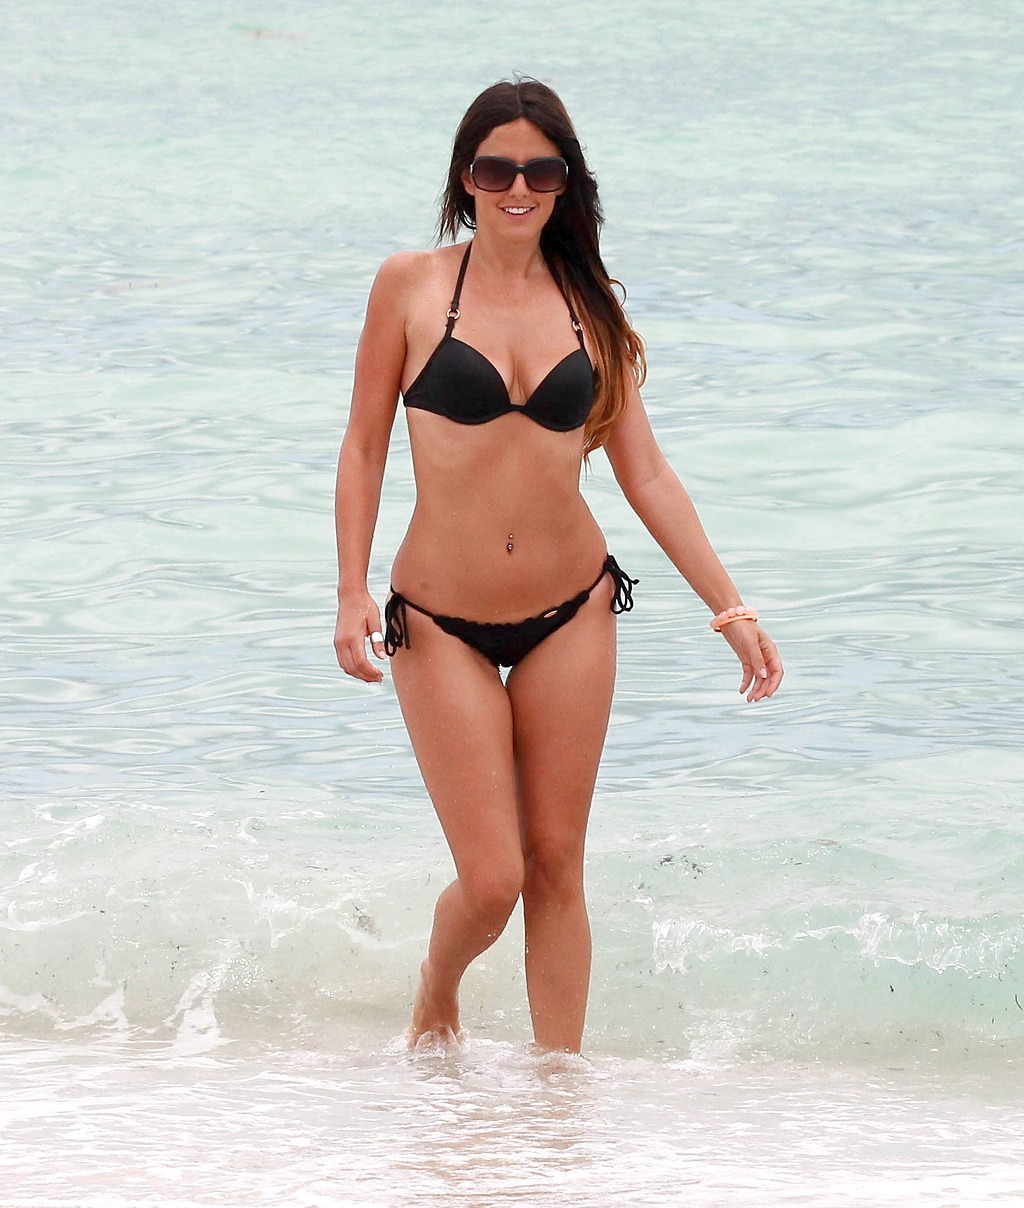 51150108 Italian model Claudia Romani shows off her toned bikini body while vacationing in Miami, Florida on July 9, 2013. FameFlynet, Inc - Beverly Hills, CA, USA - +1 (818) 307-4813